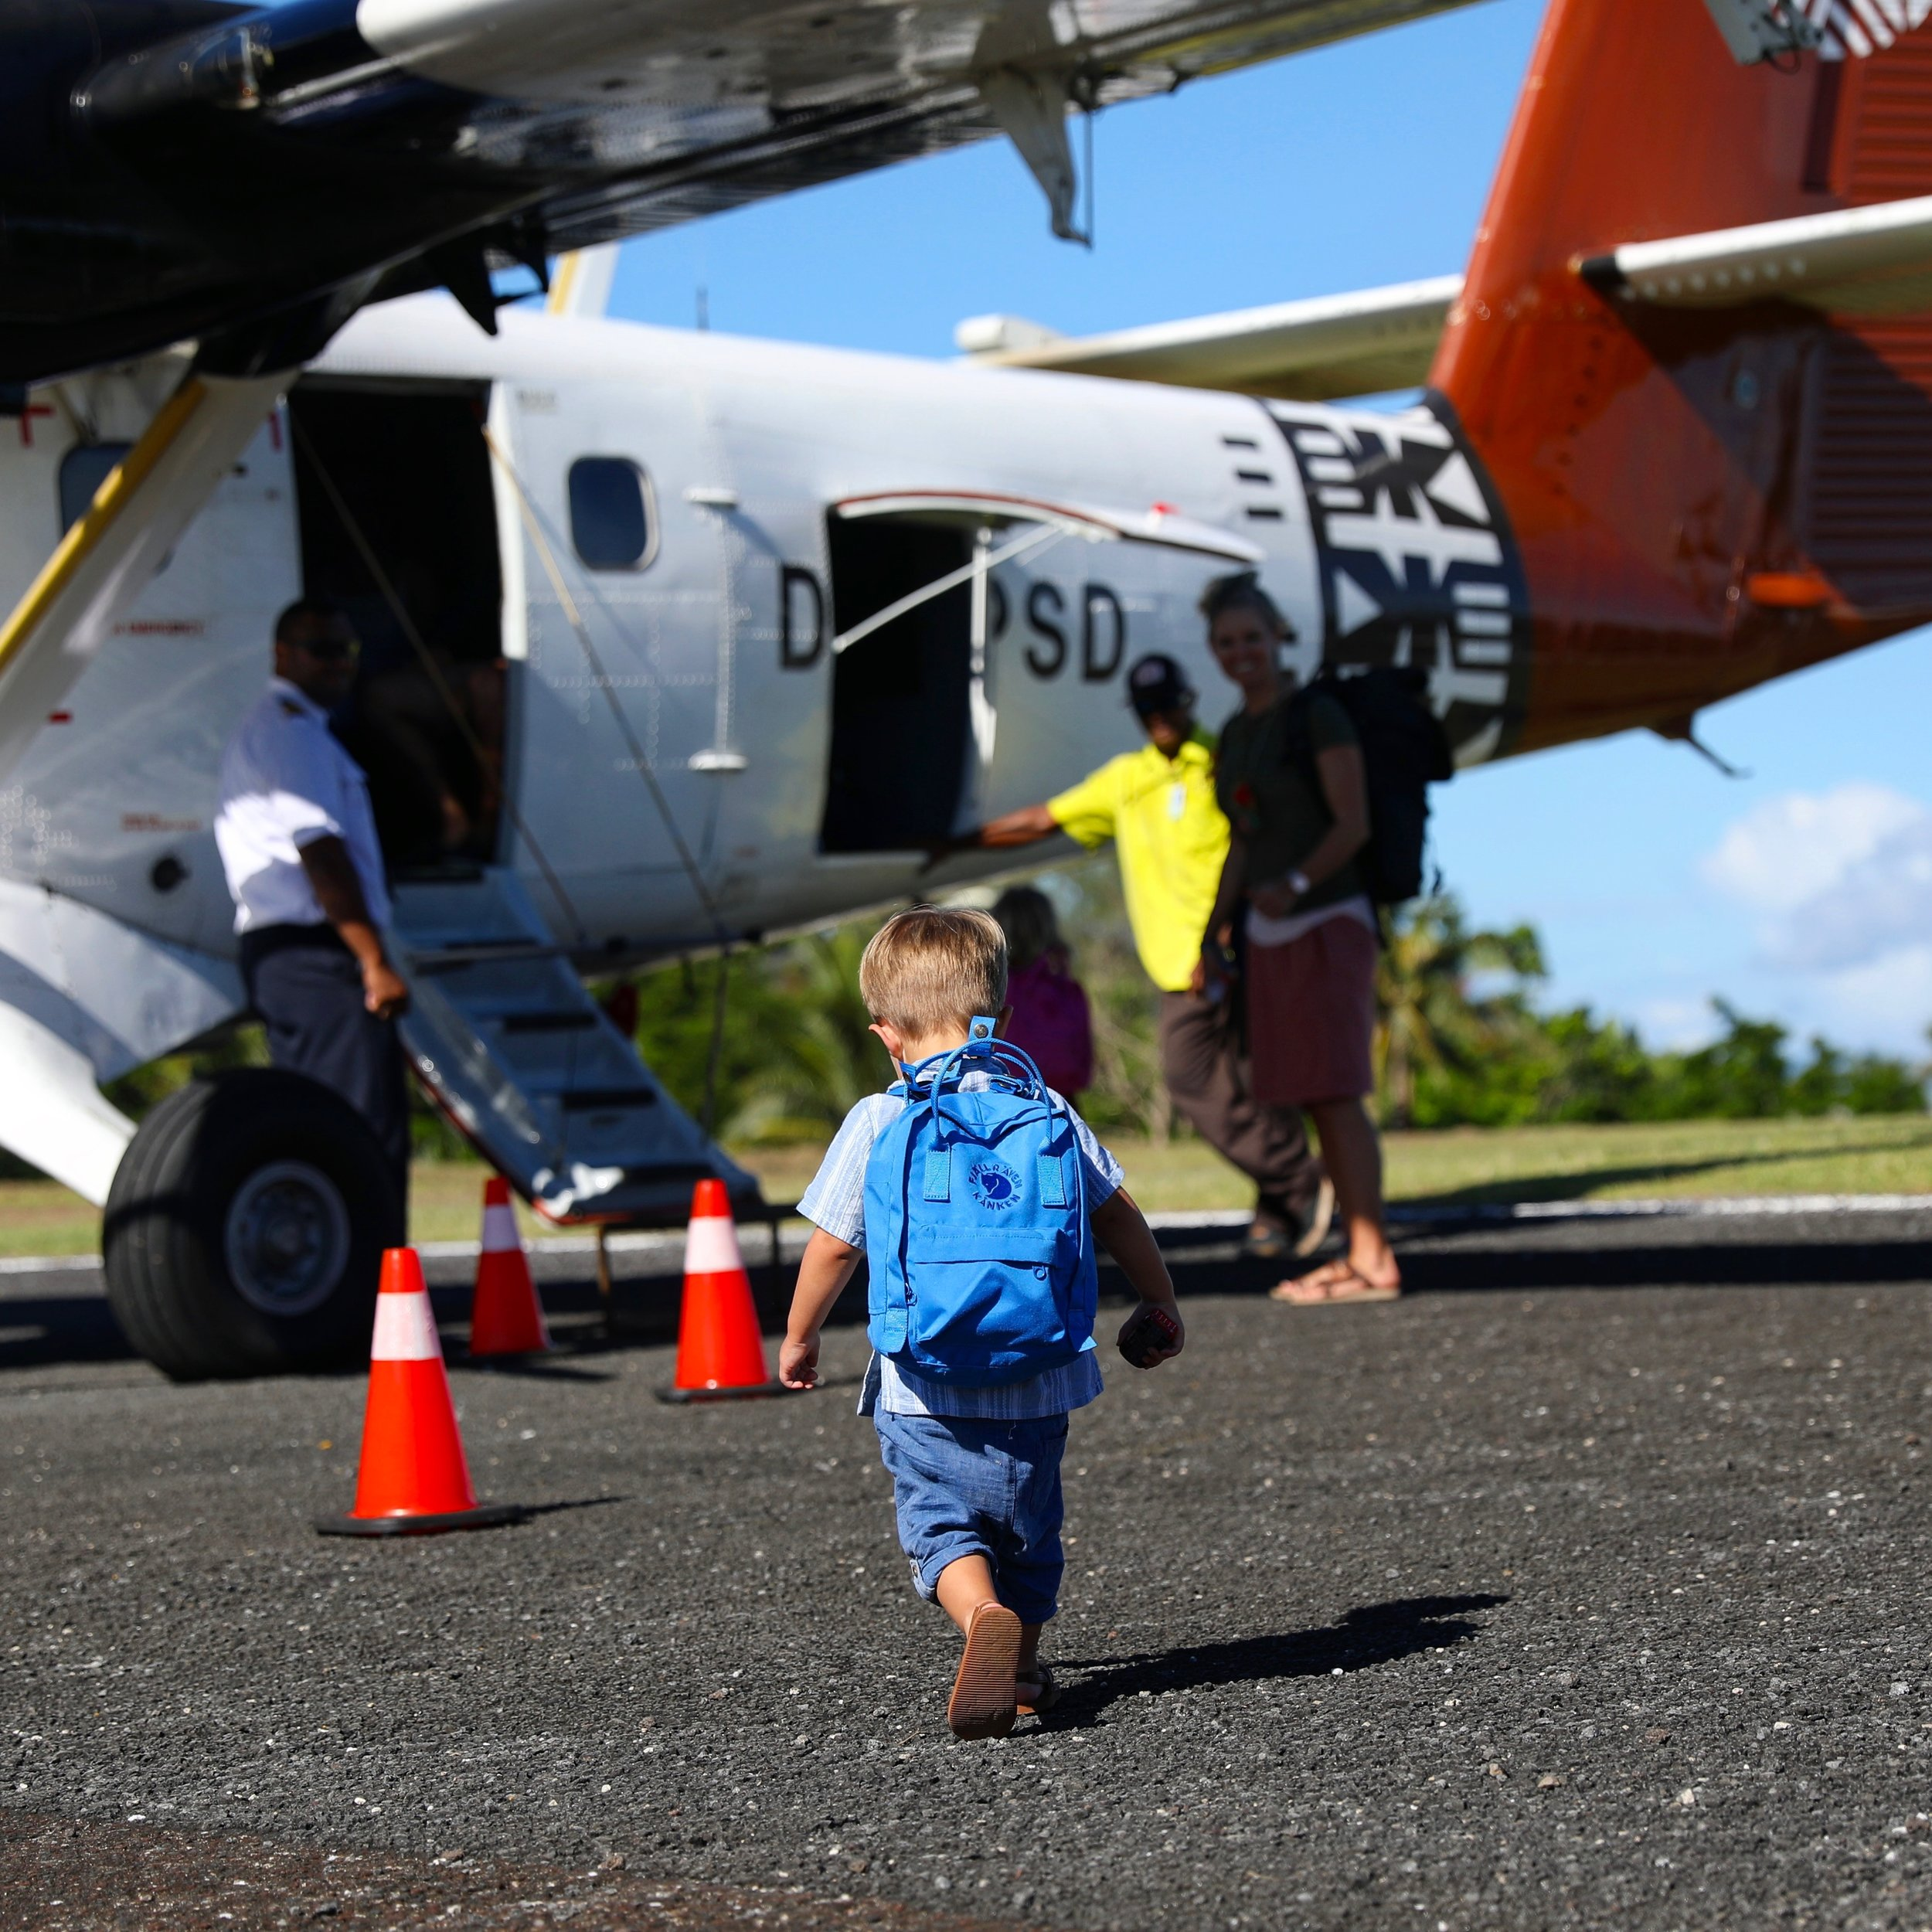 12th day of christmas - a trip to fiji